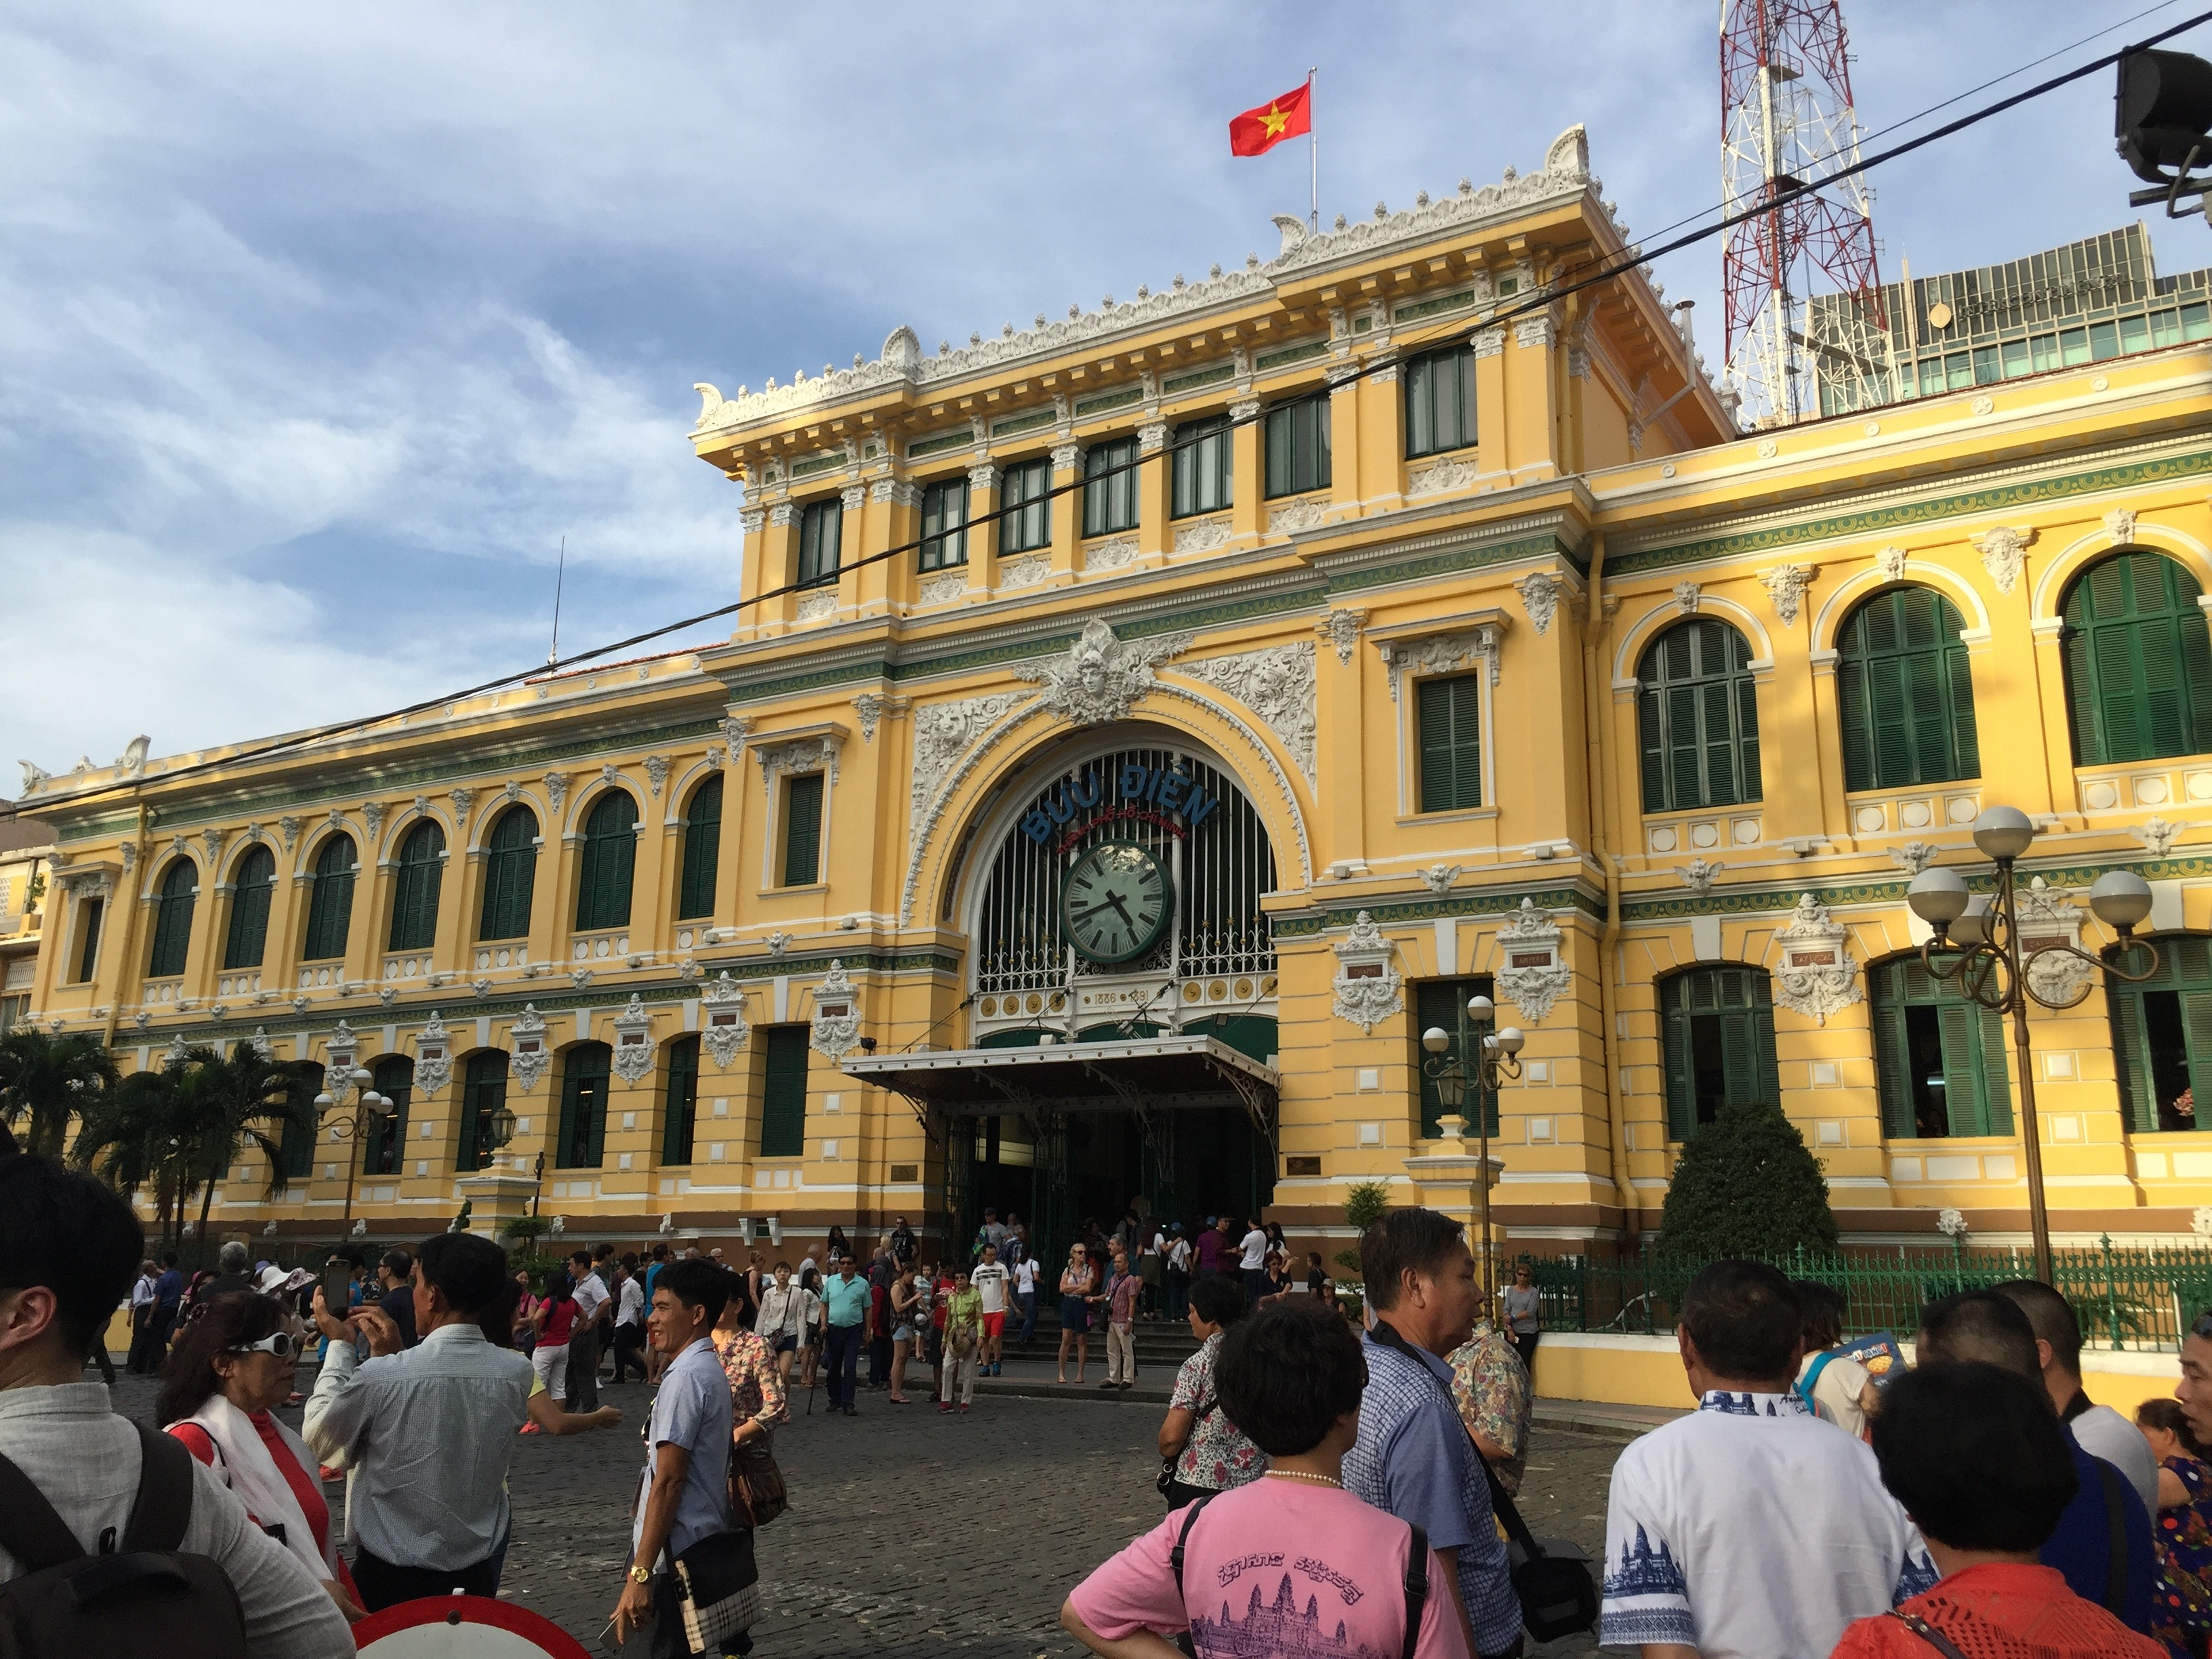 Saigon Central Post Office – Ho Chi Minh City